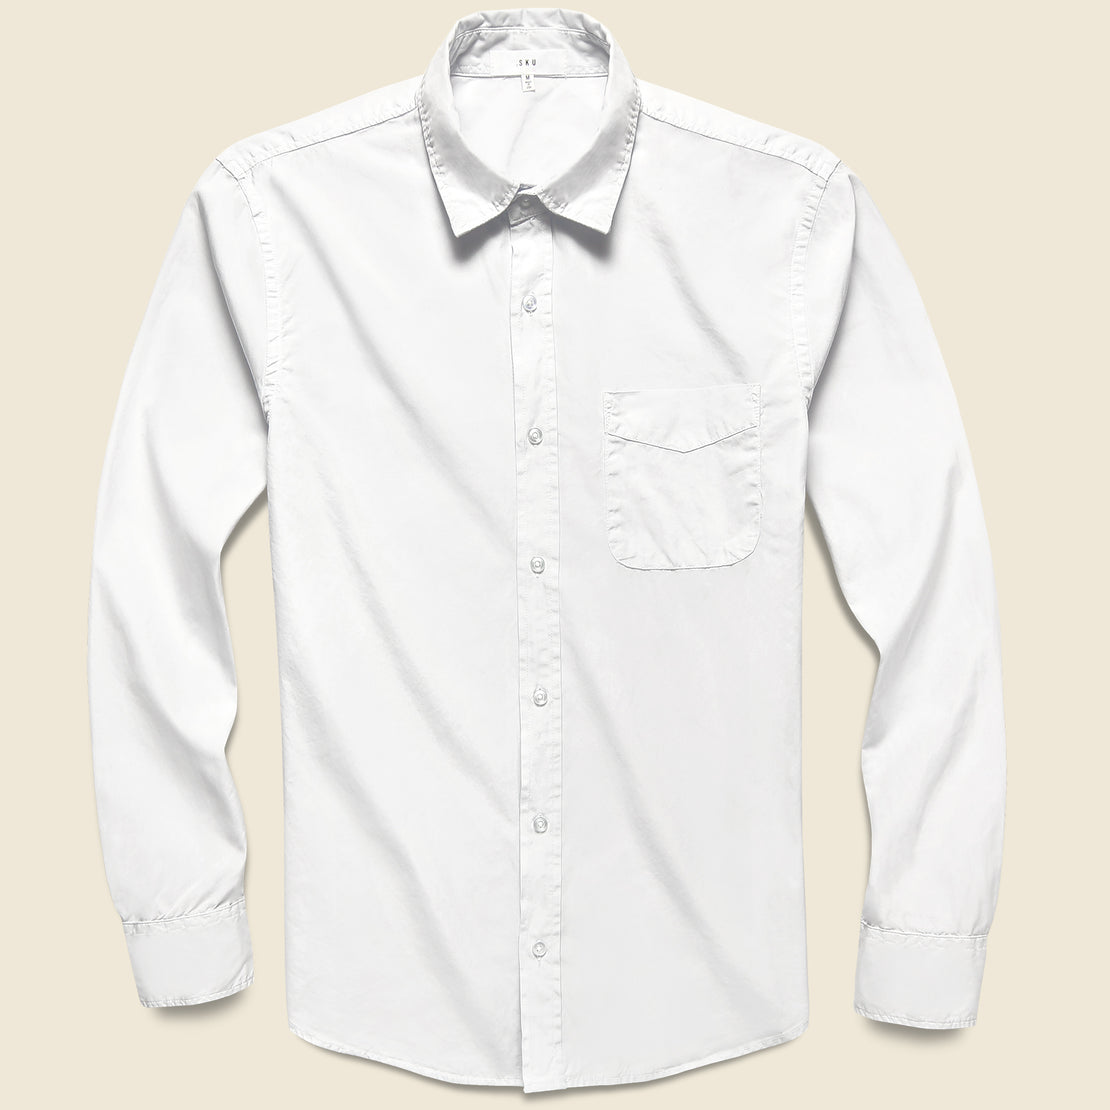 Save Khaki Poplin Standard Shirt - White